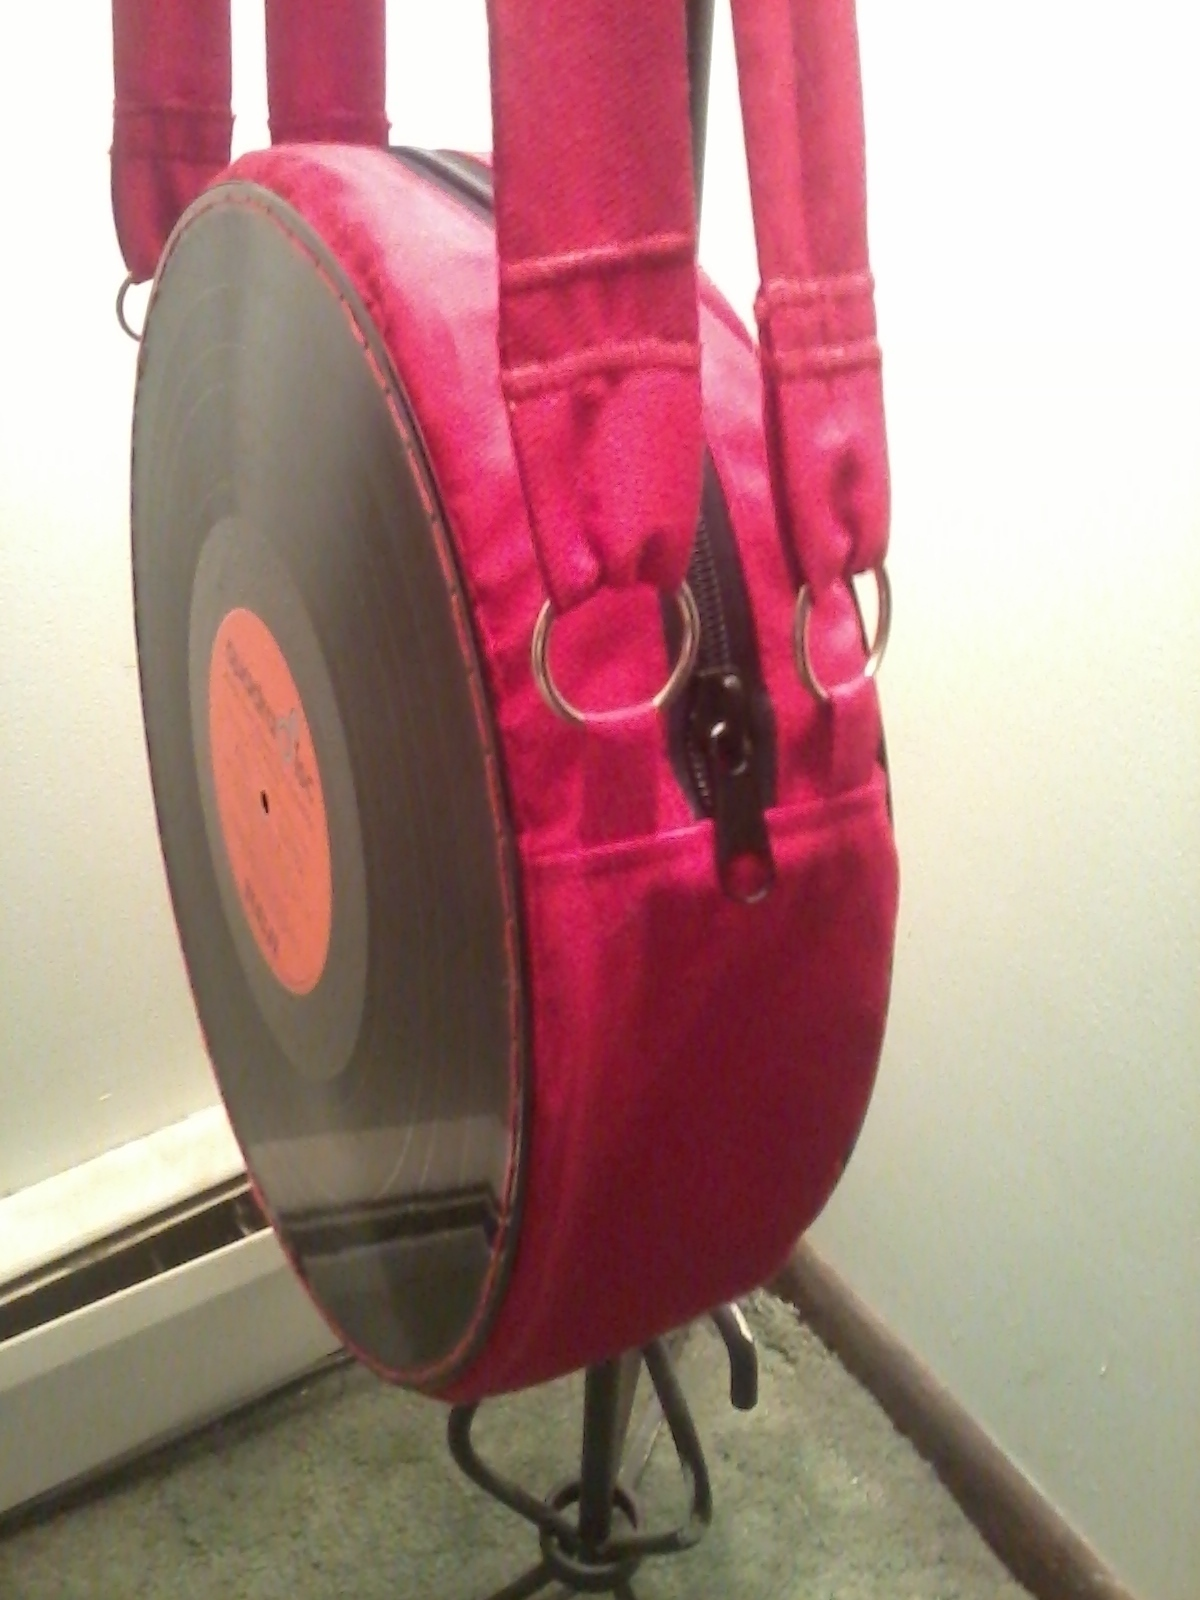 Vinyl Record Bag Step By Step 183 How To Make A Vinyl Record